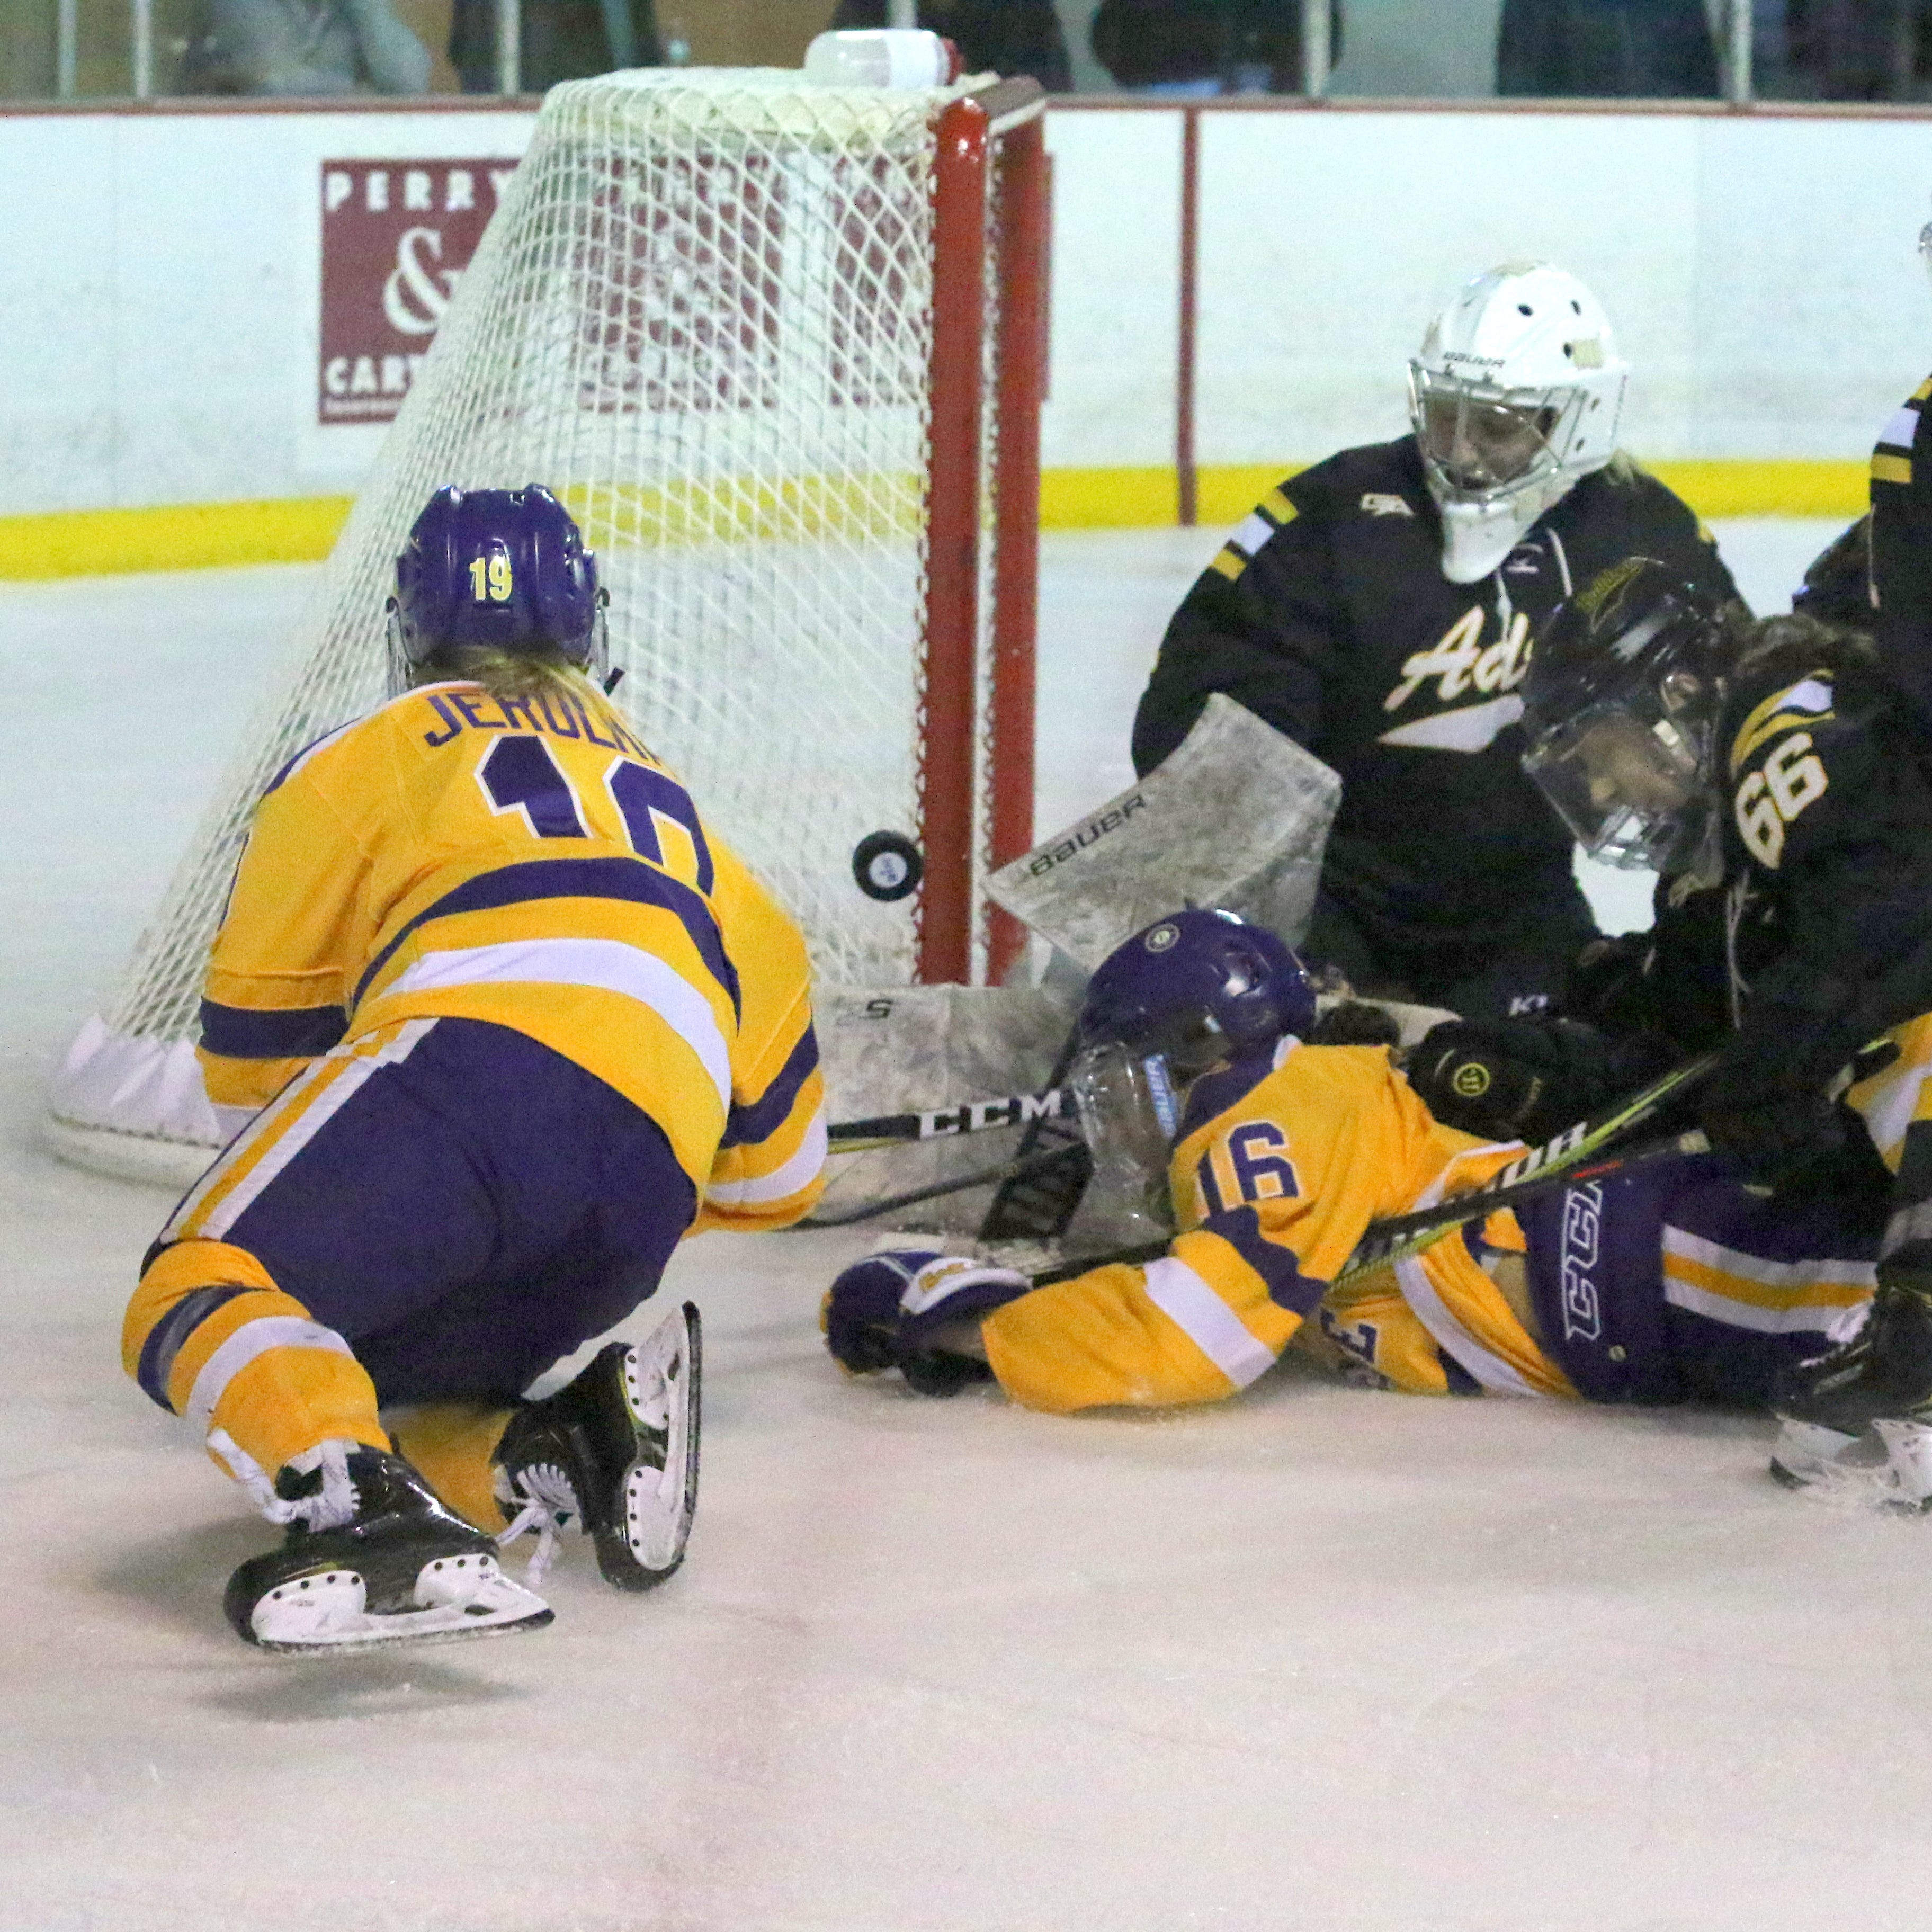 Adrian ends Elmira's season with overtime goal in Division III women's hockey quarterfinal